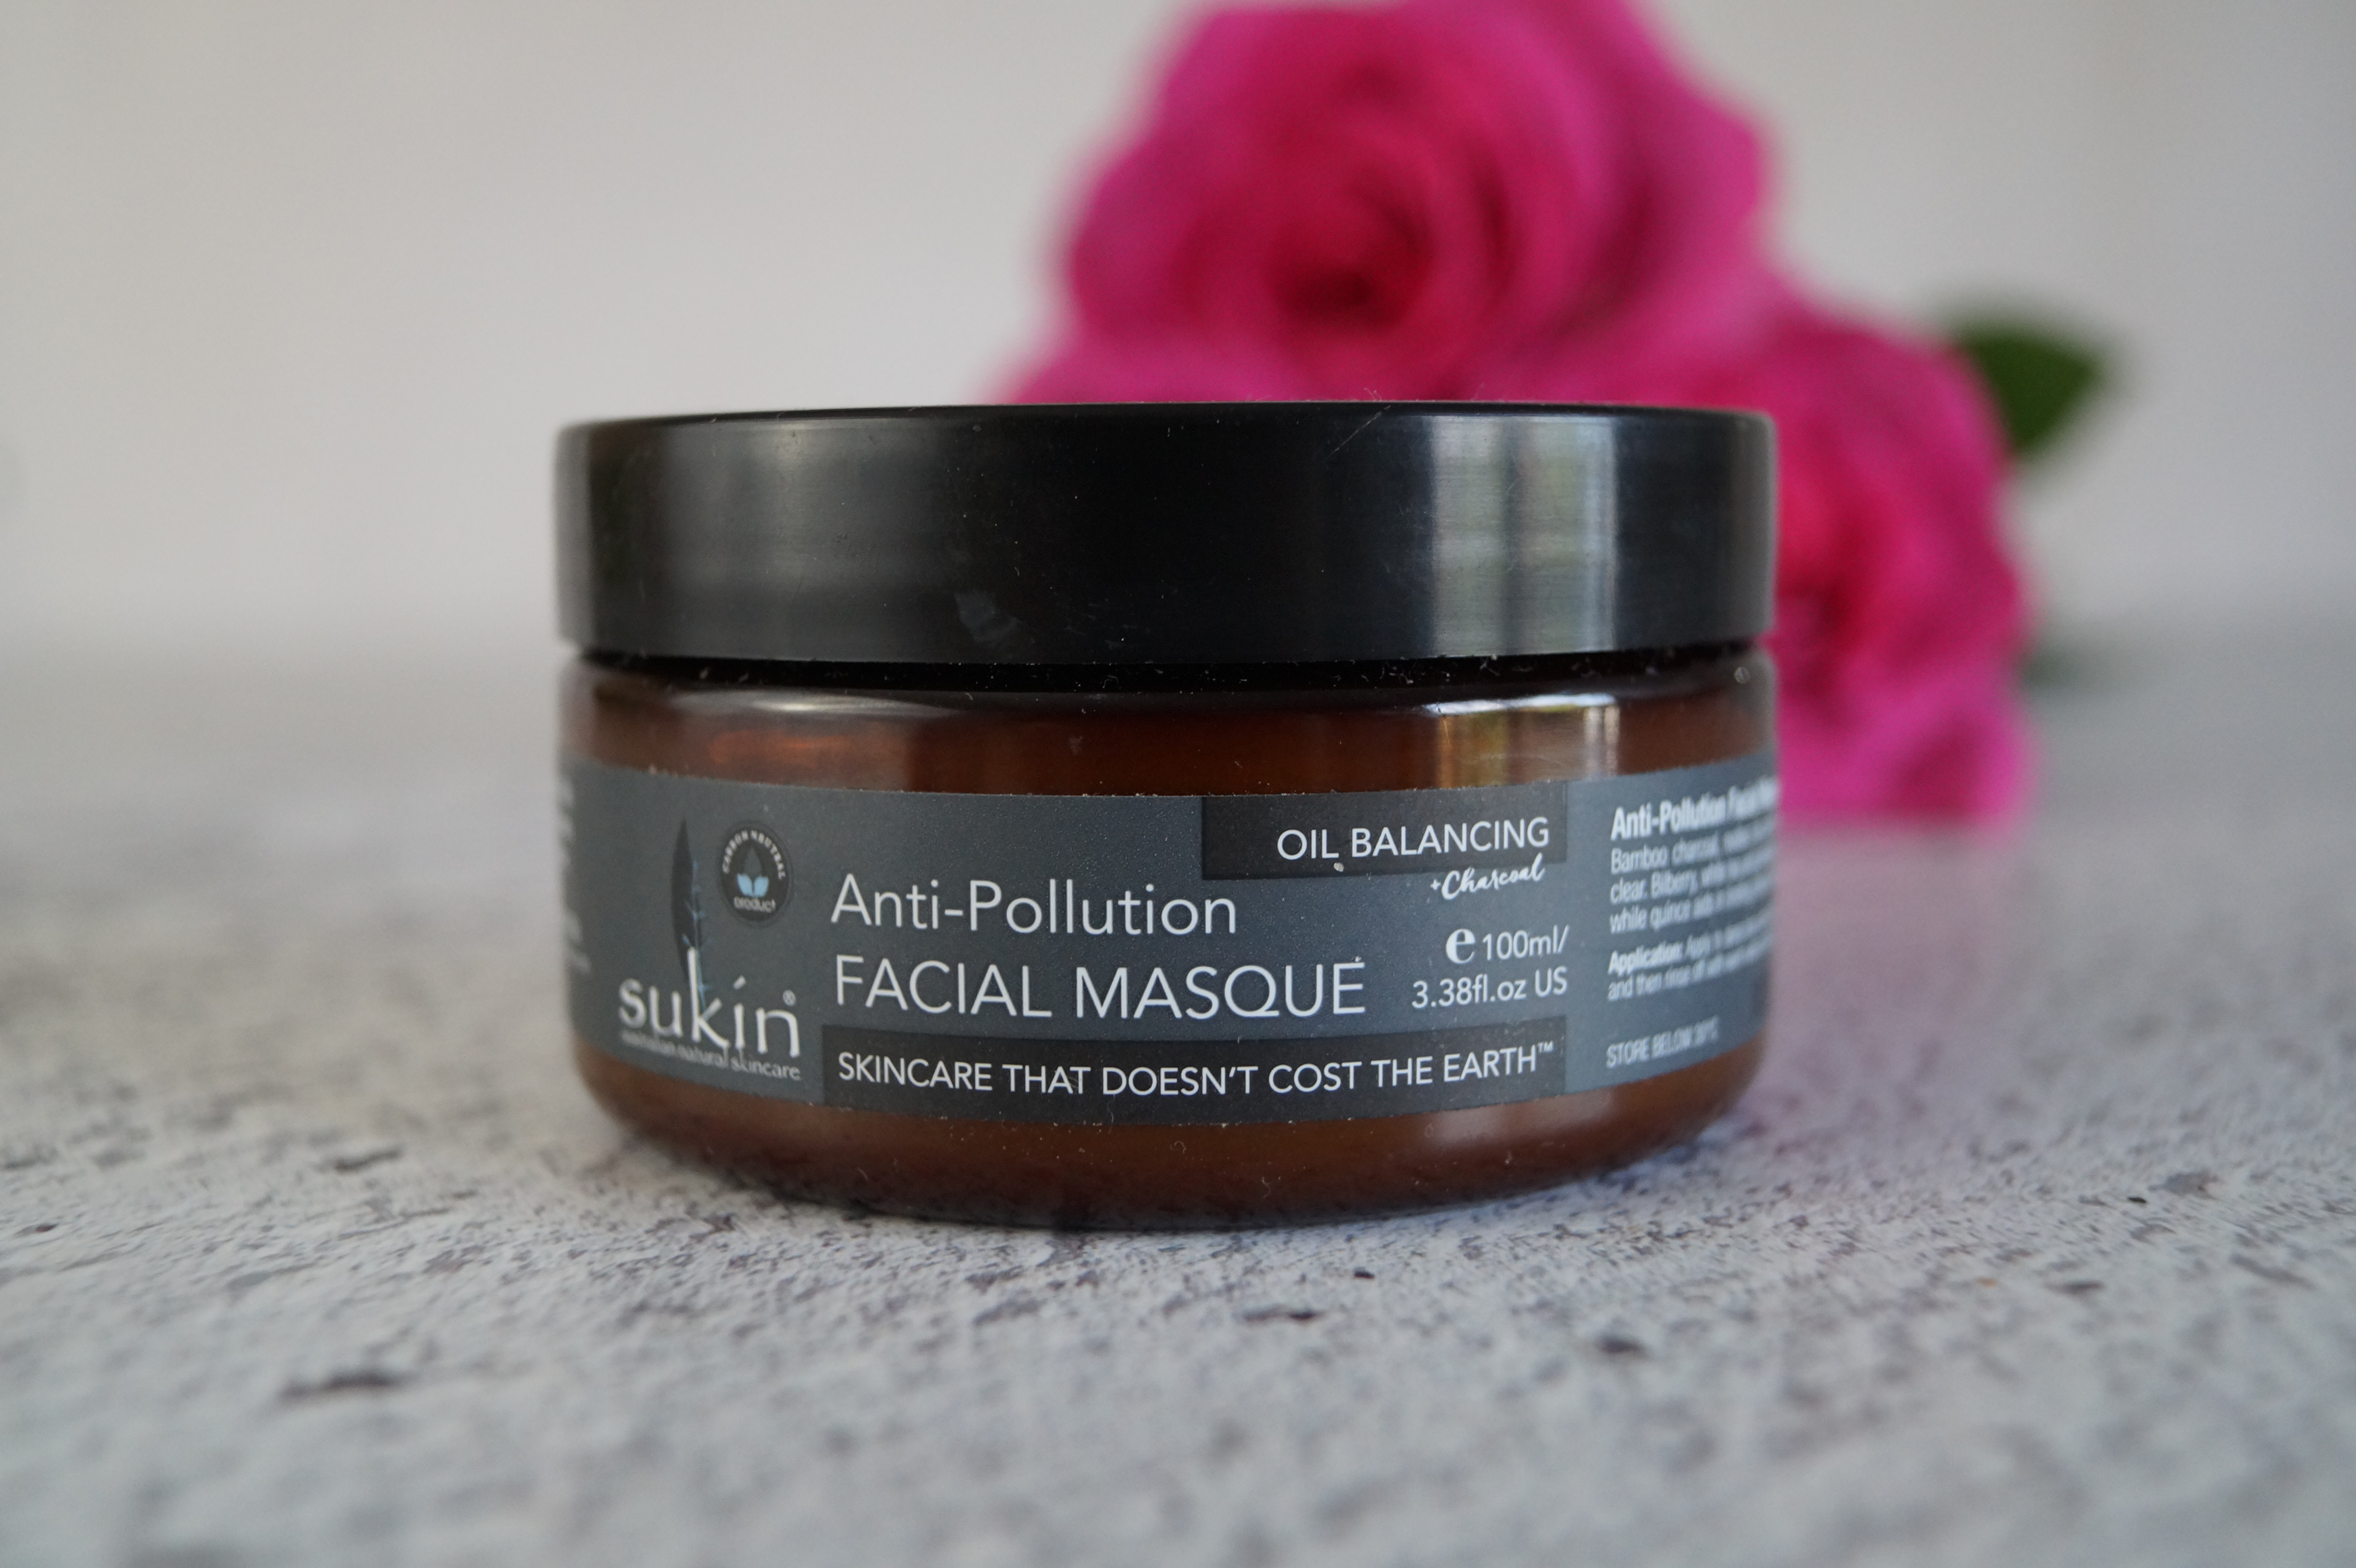 Sukin Anti-Pollution face mask